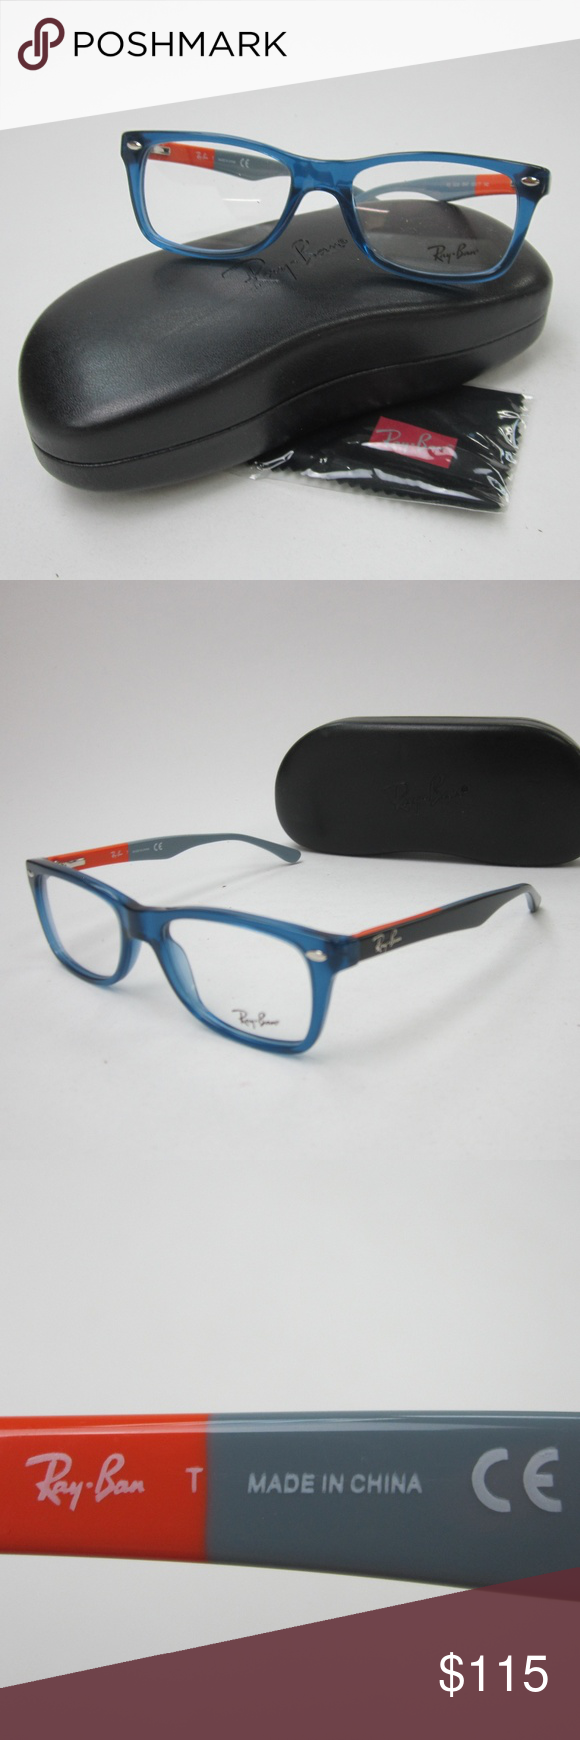 02b8b76c2b Ray Ban RB 5228 5547 Unisex Eyeglasses OLE609 Ray Ban RB 5228 5547 Women s  Eyeglasses